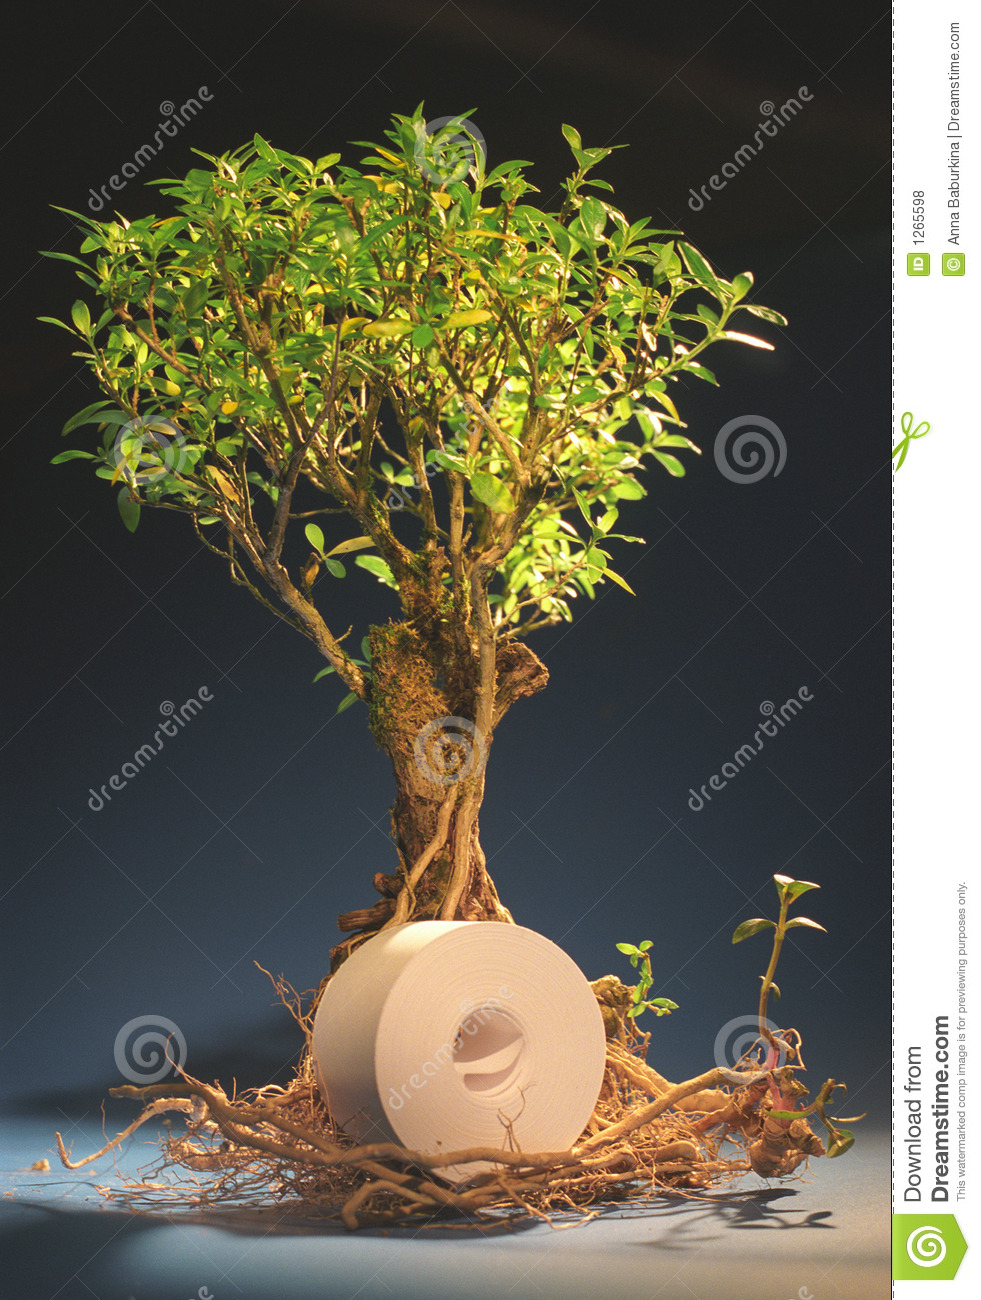 The tree with a roll of paper